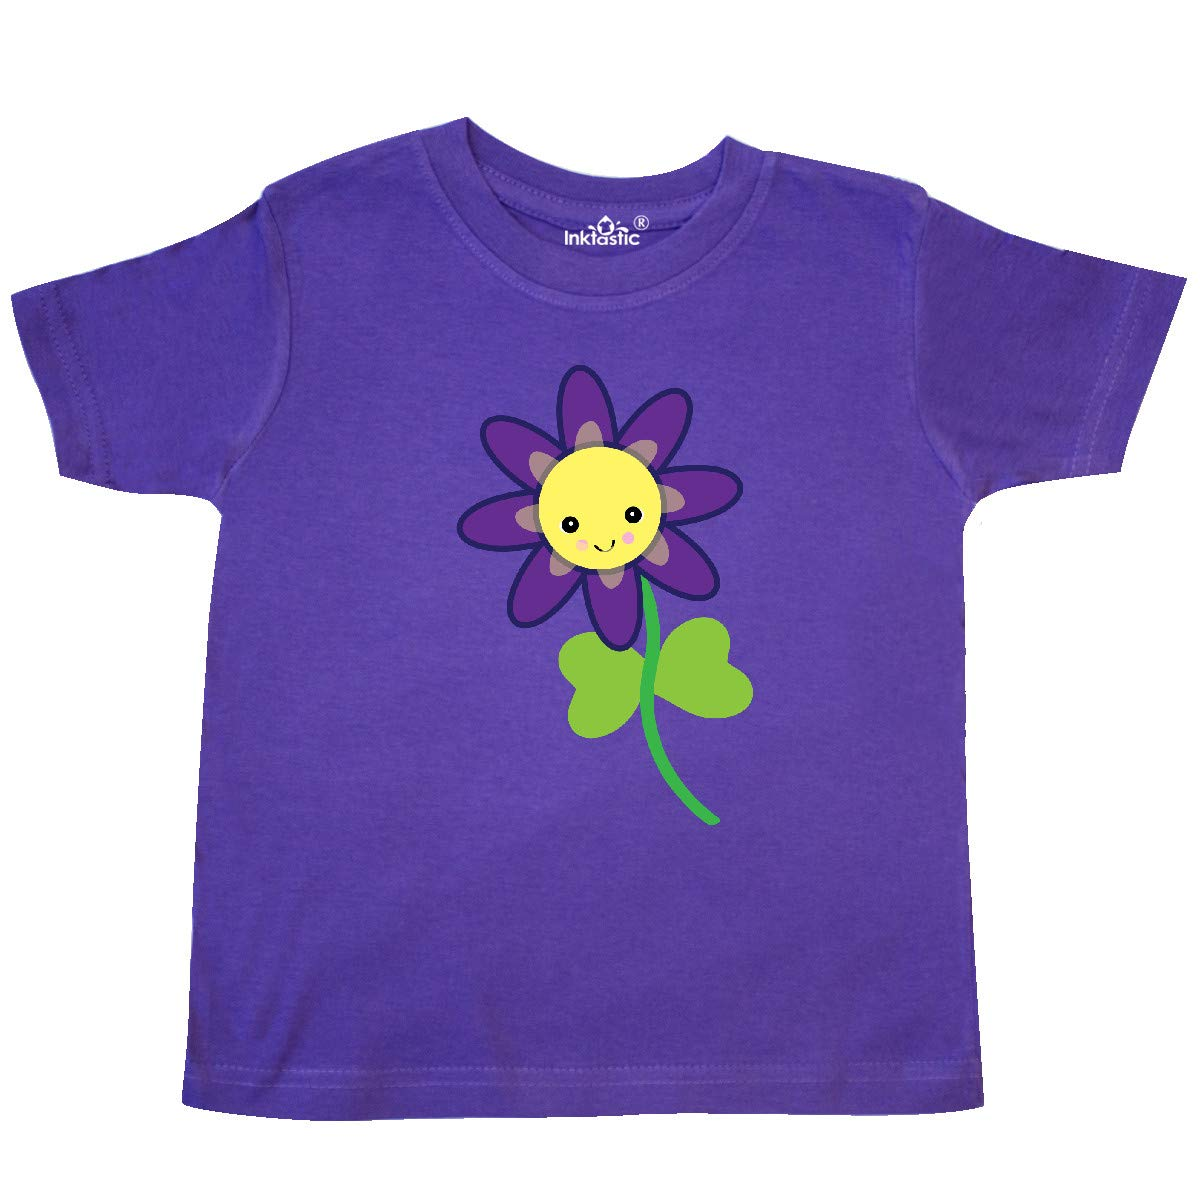 inktastic Cute Kawaii Purple and Yellow Flower Toddler T-Shirt